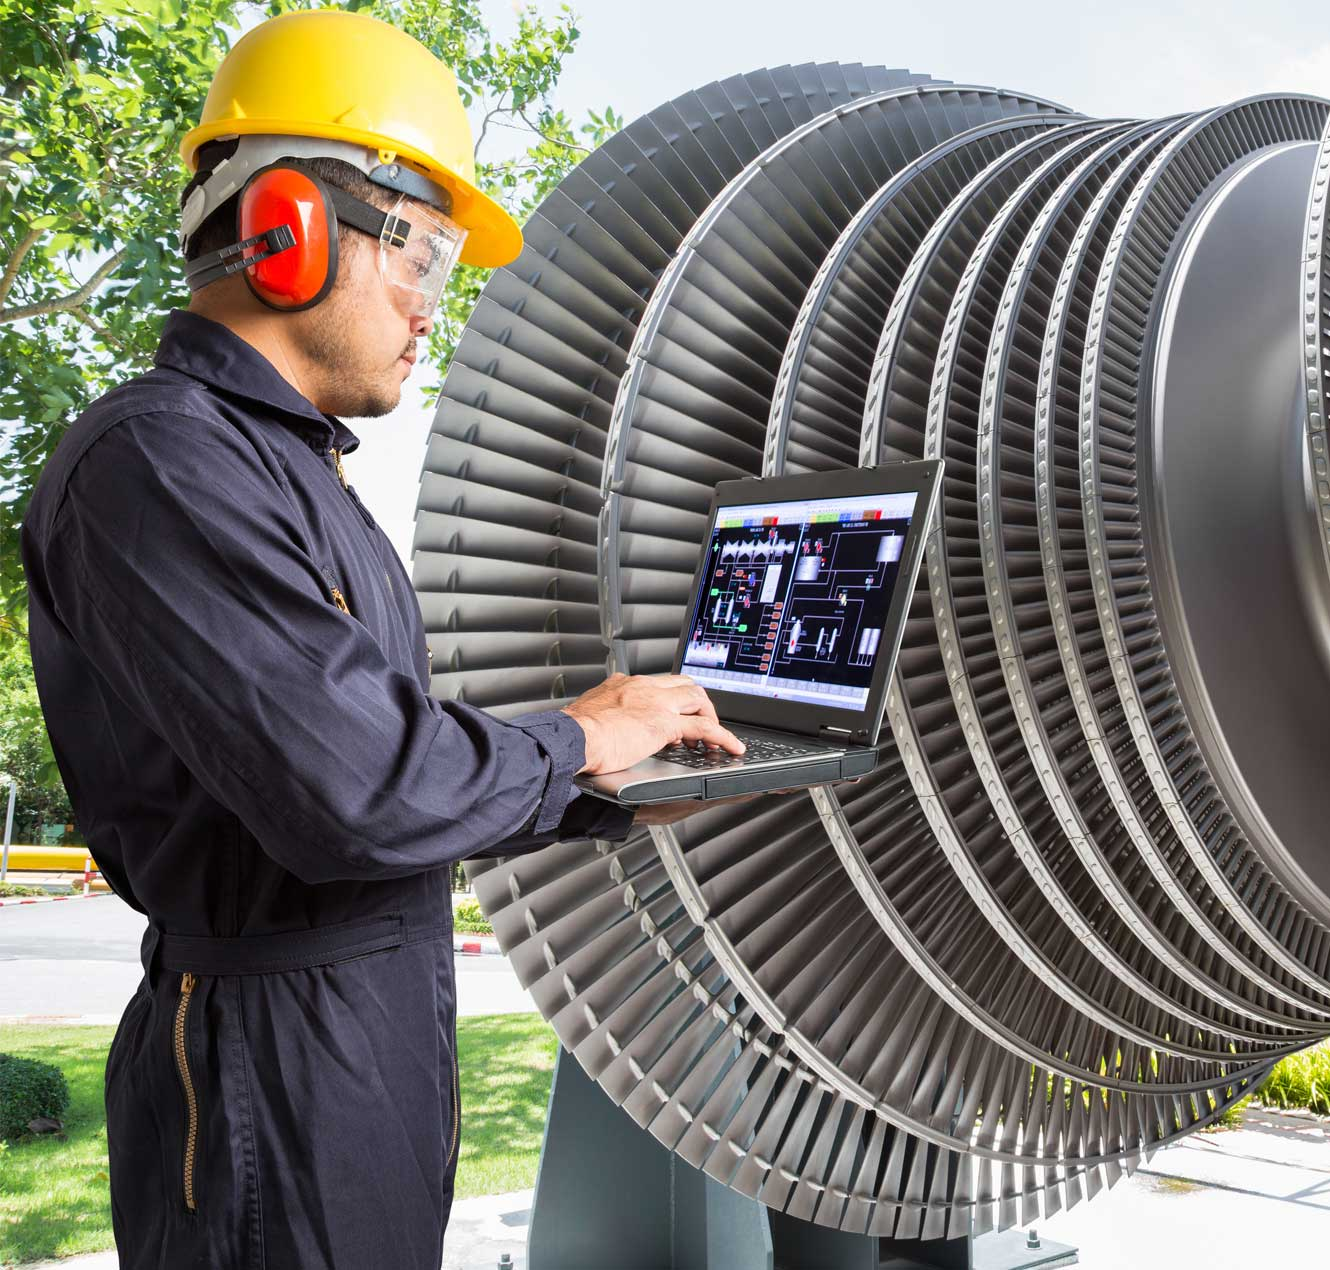 Turbine Engineer